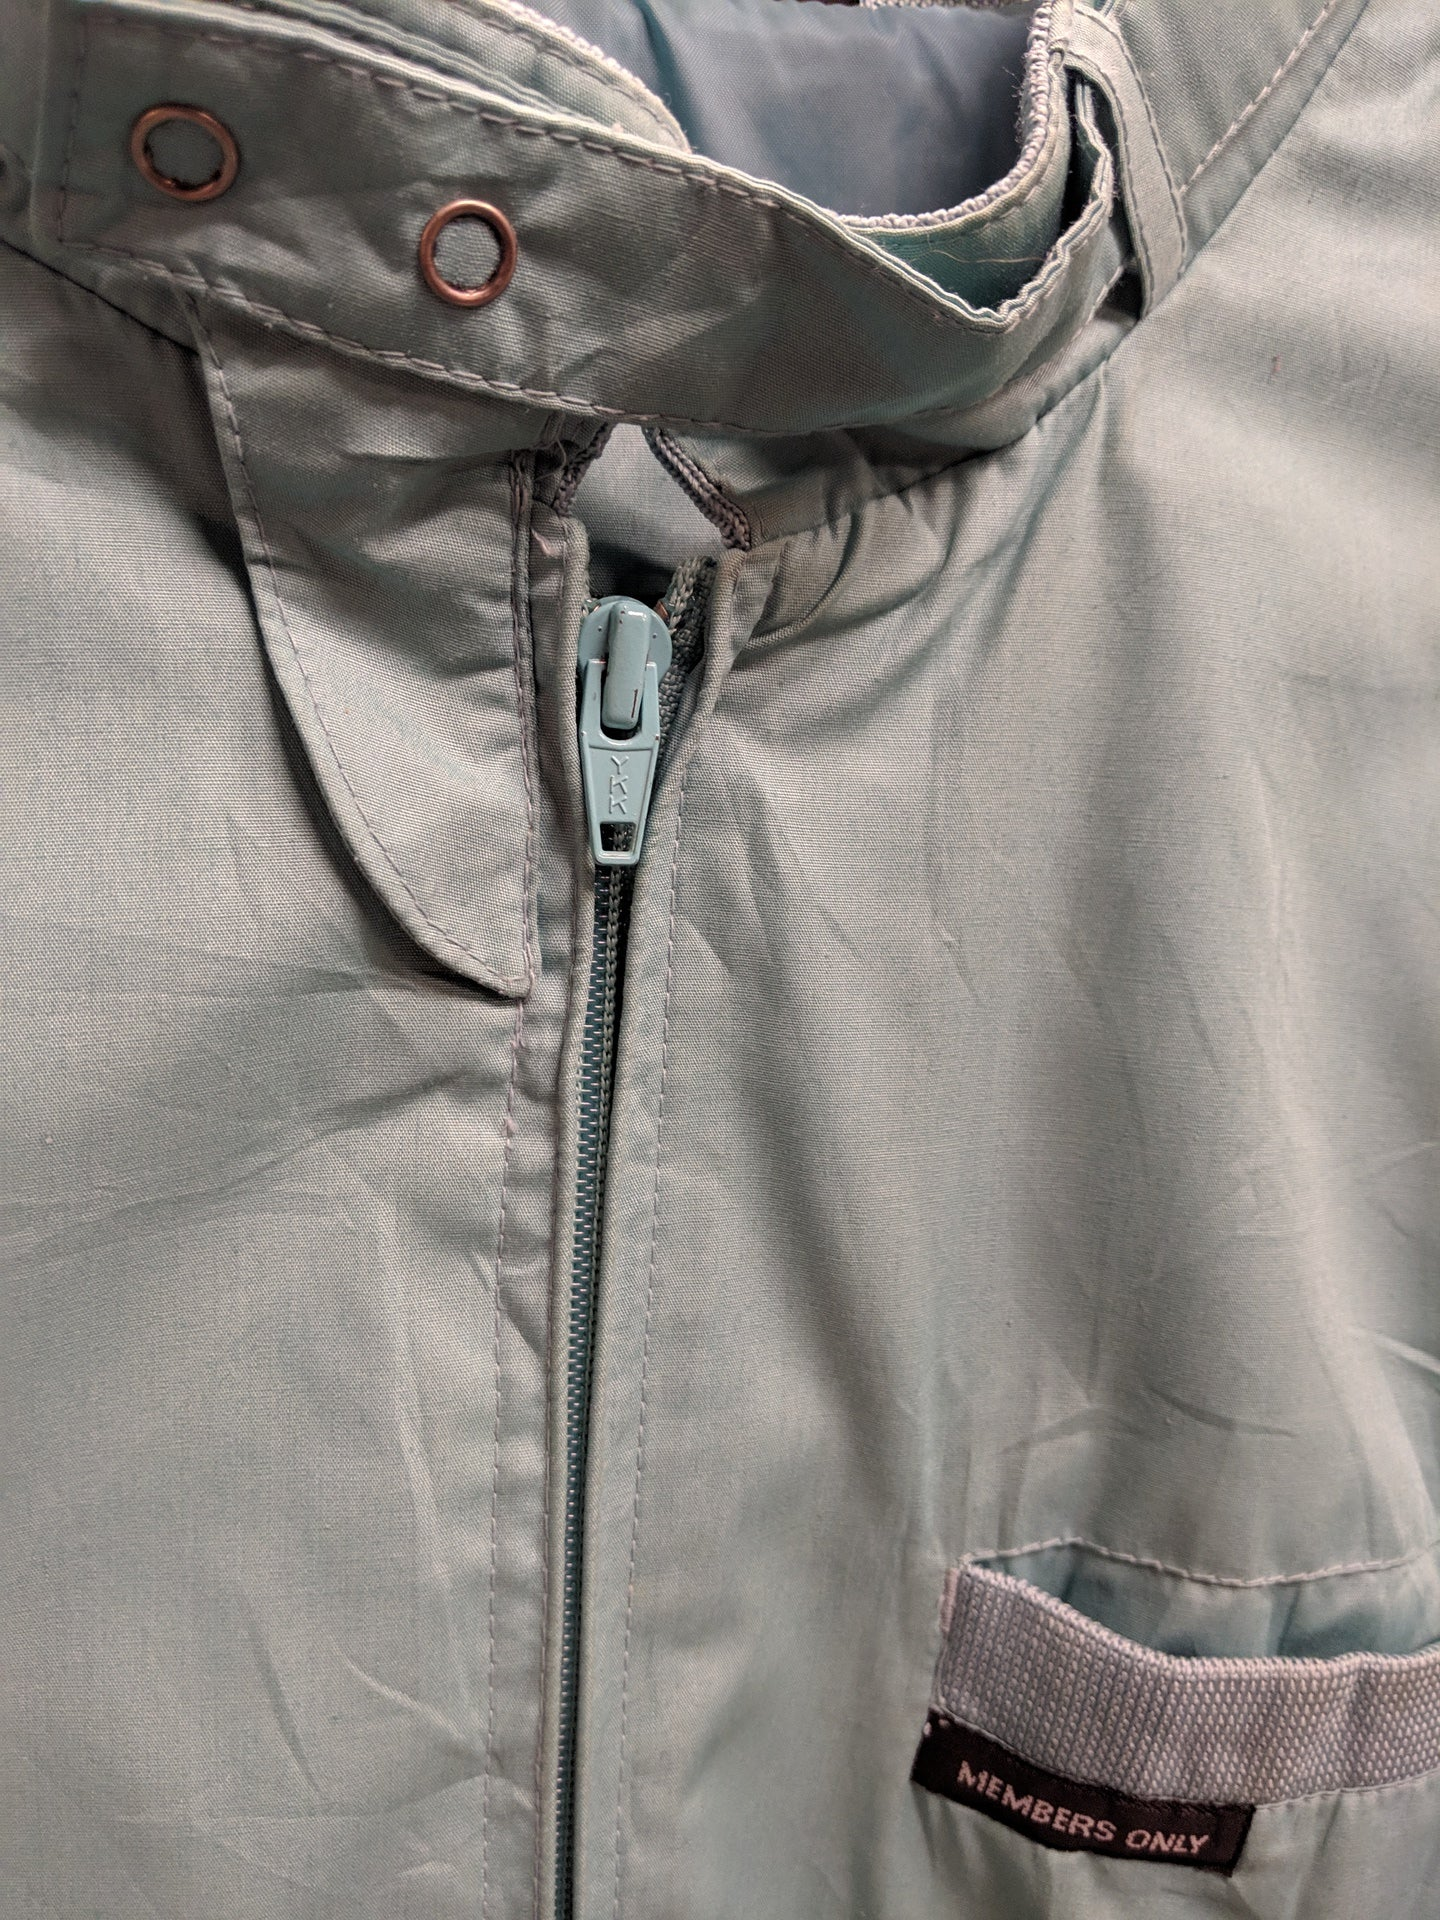 Members Only Baby Blue Zip Racer Jacket